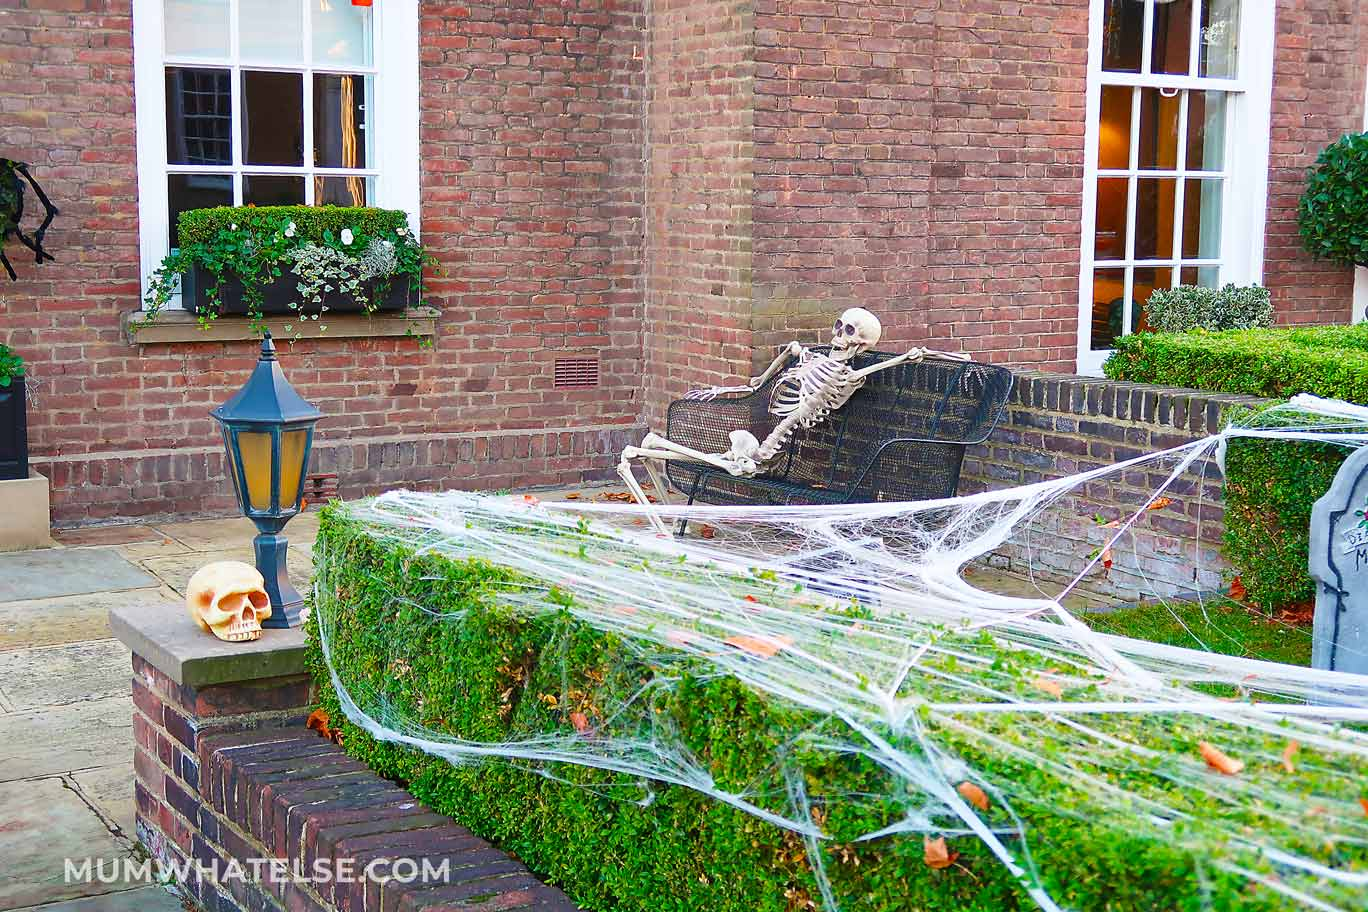 a skeleton on a bench in fron of a haunted house in London